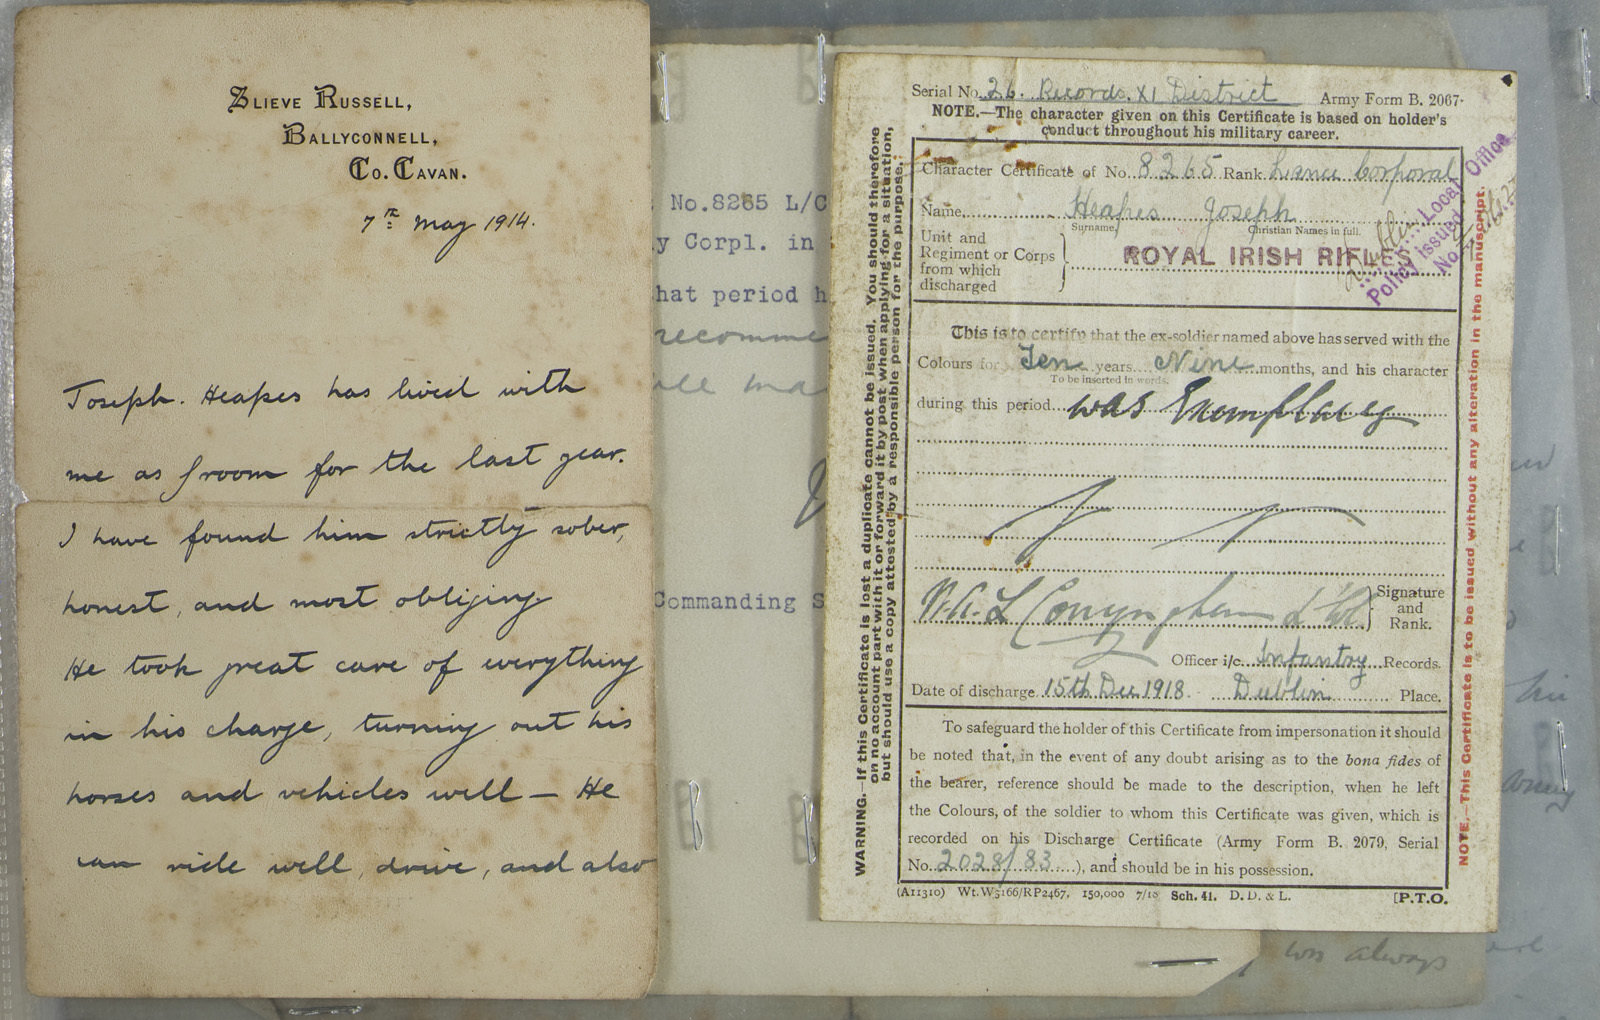 Discharge certificate and testimonial of Joseph Heapes, Dublin, Europeana 1914-1918 / Máire Uí Éafa, CC BY-SA